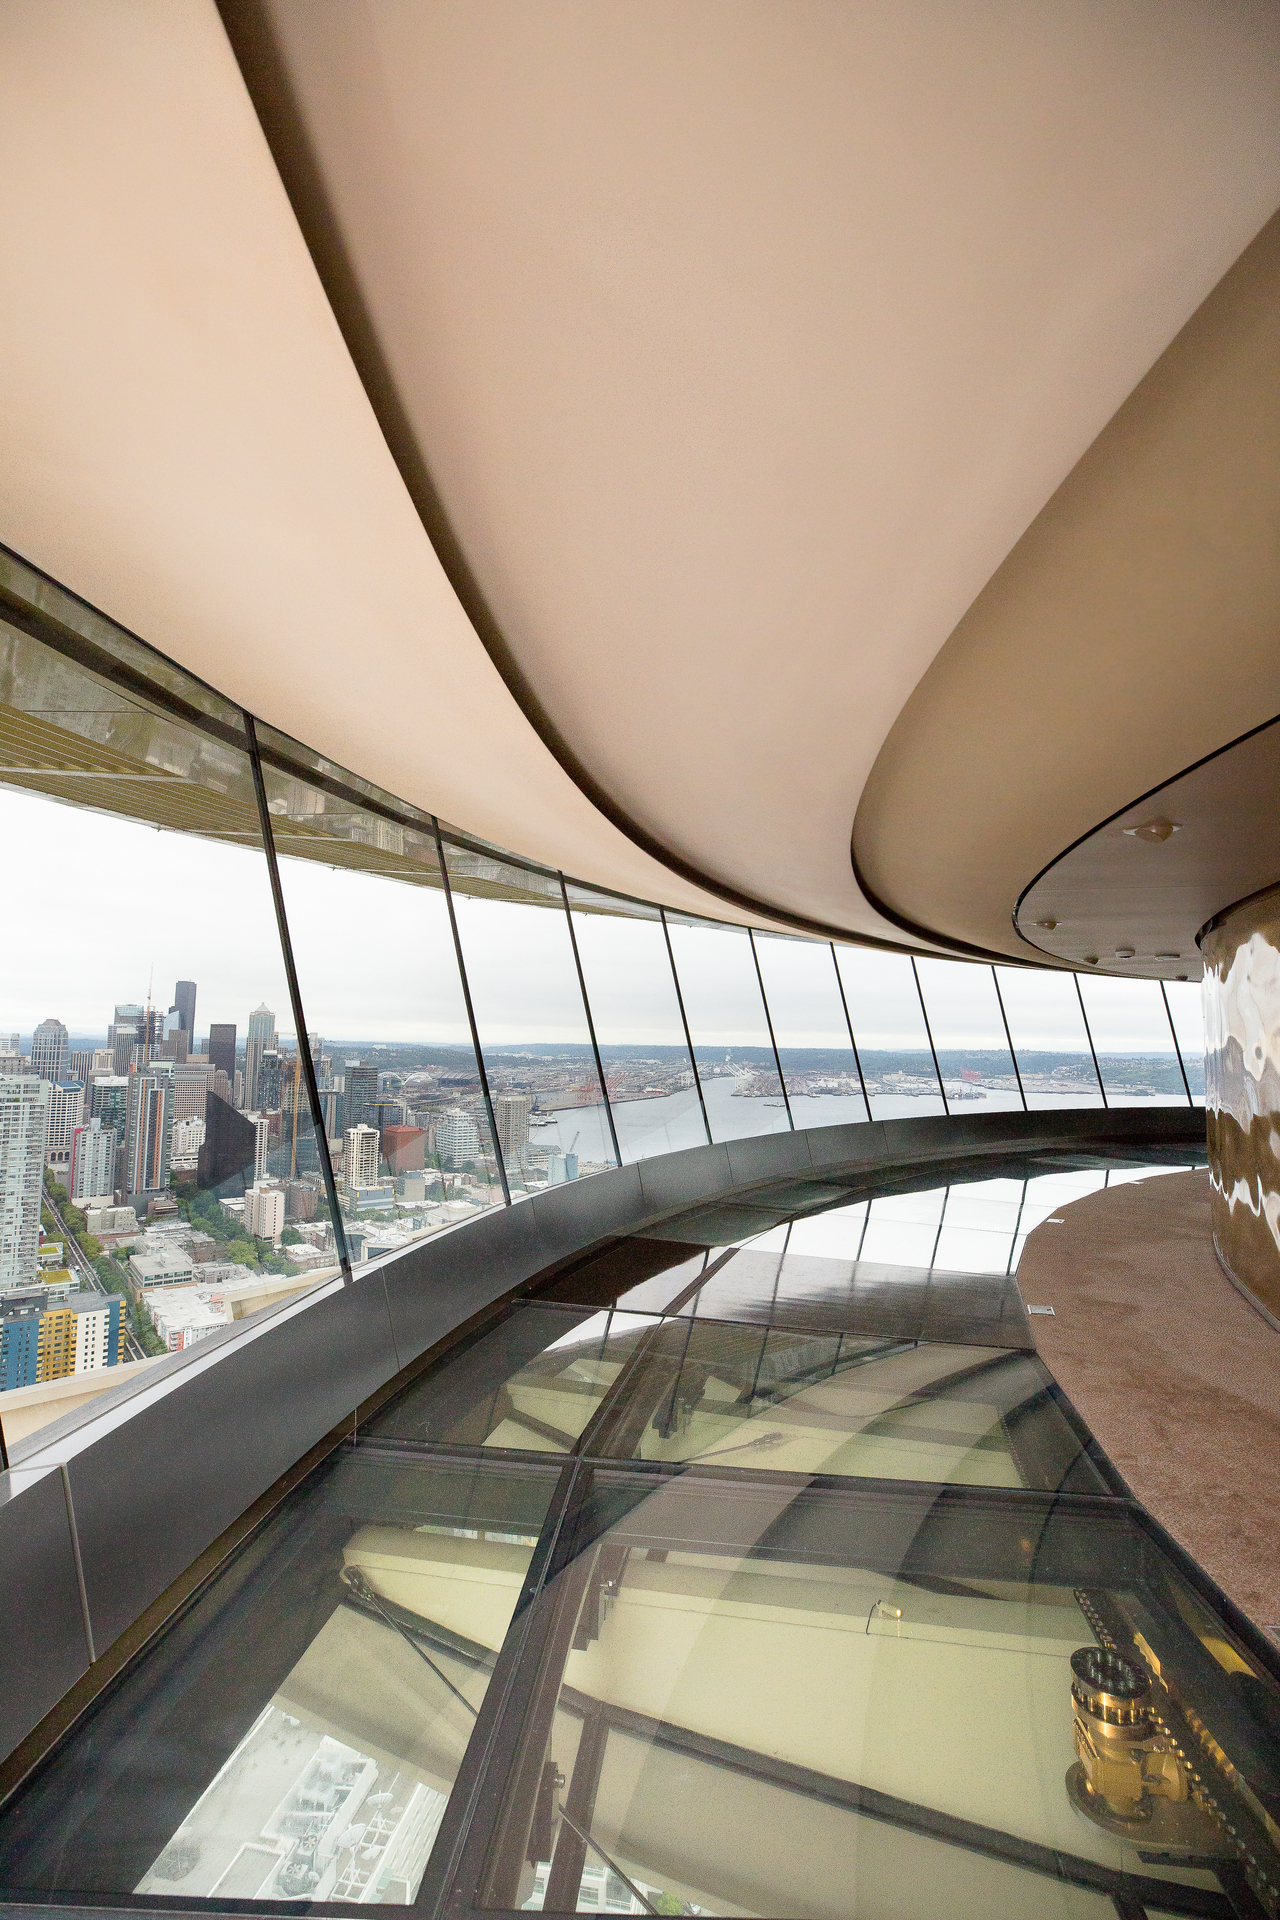 Fellert's Even Better Silk is the only one in the world. Seen here at the Space Needle in Seattle, Washington.